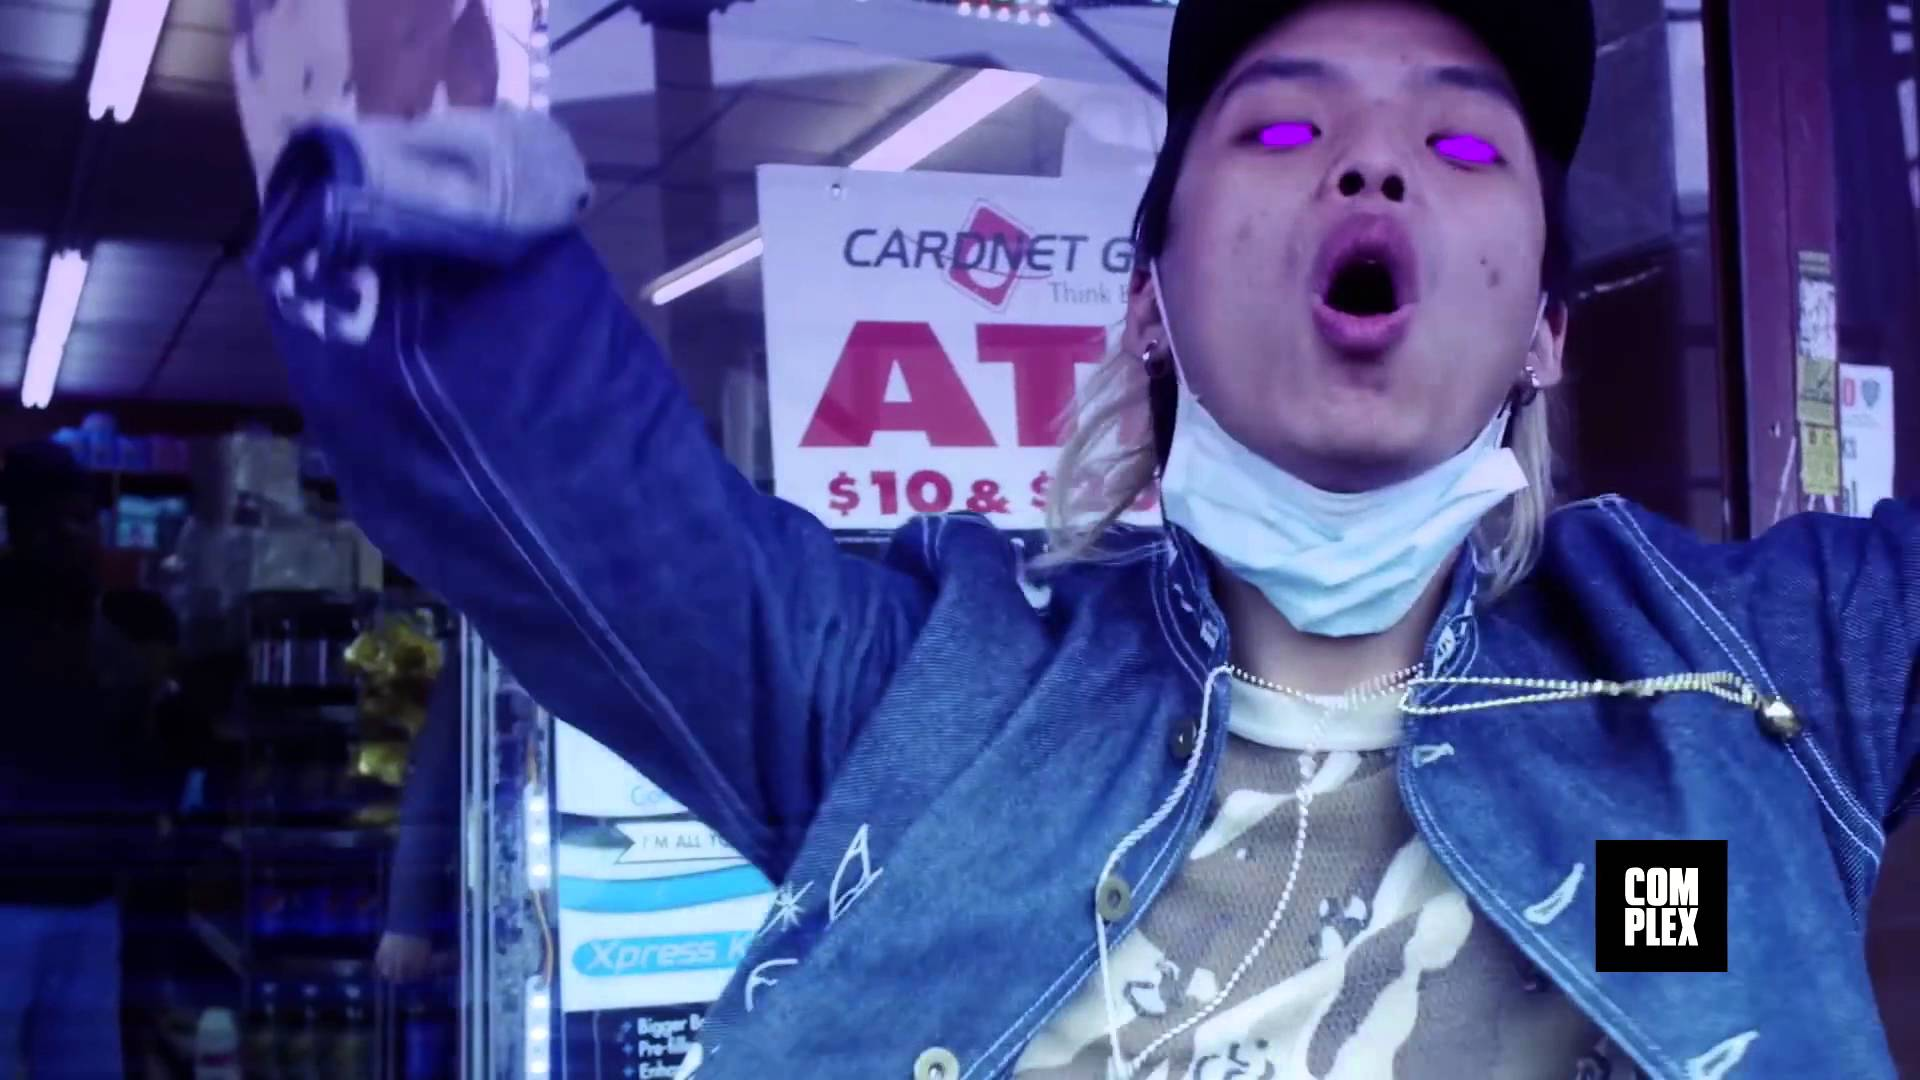 Keith Ape Wallpapers - Wallpaper Cave Dumbfoundead Wallpaper